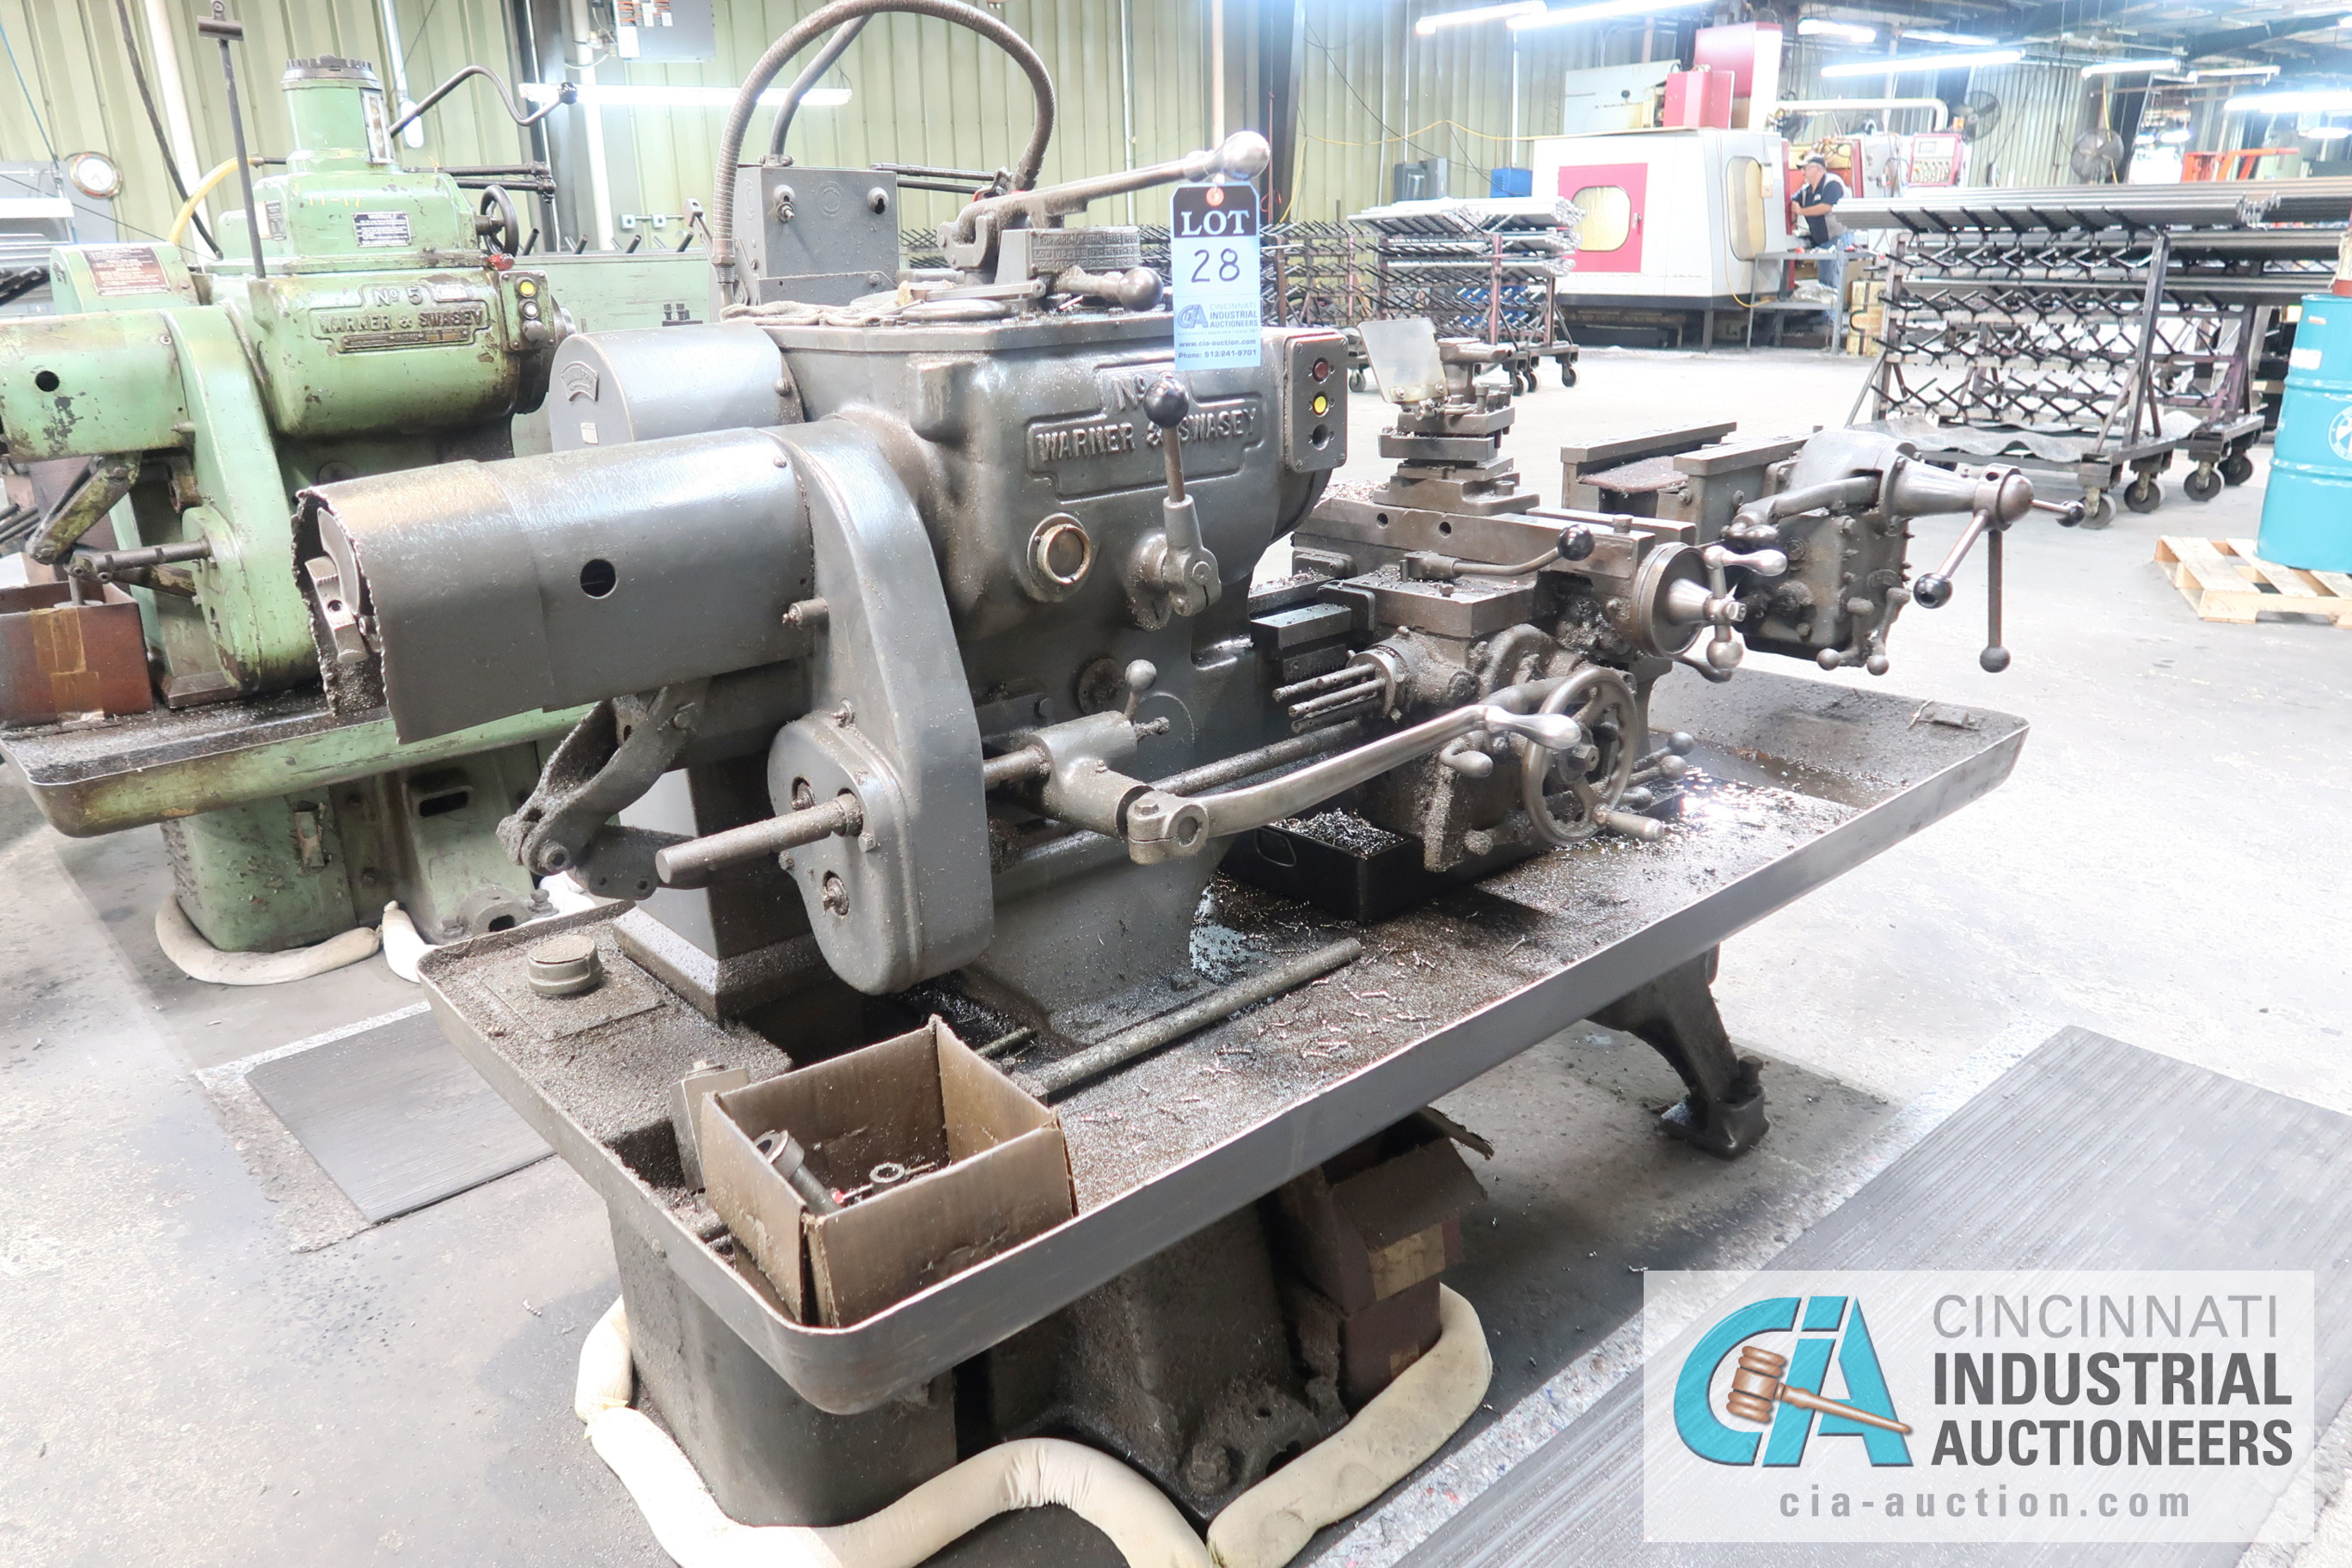 (Former lot 28) WARNER AND SWASEY MODEL 3 LATHE; S/N 663697 - Image 4 of 7